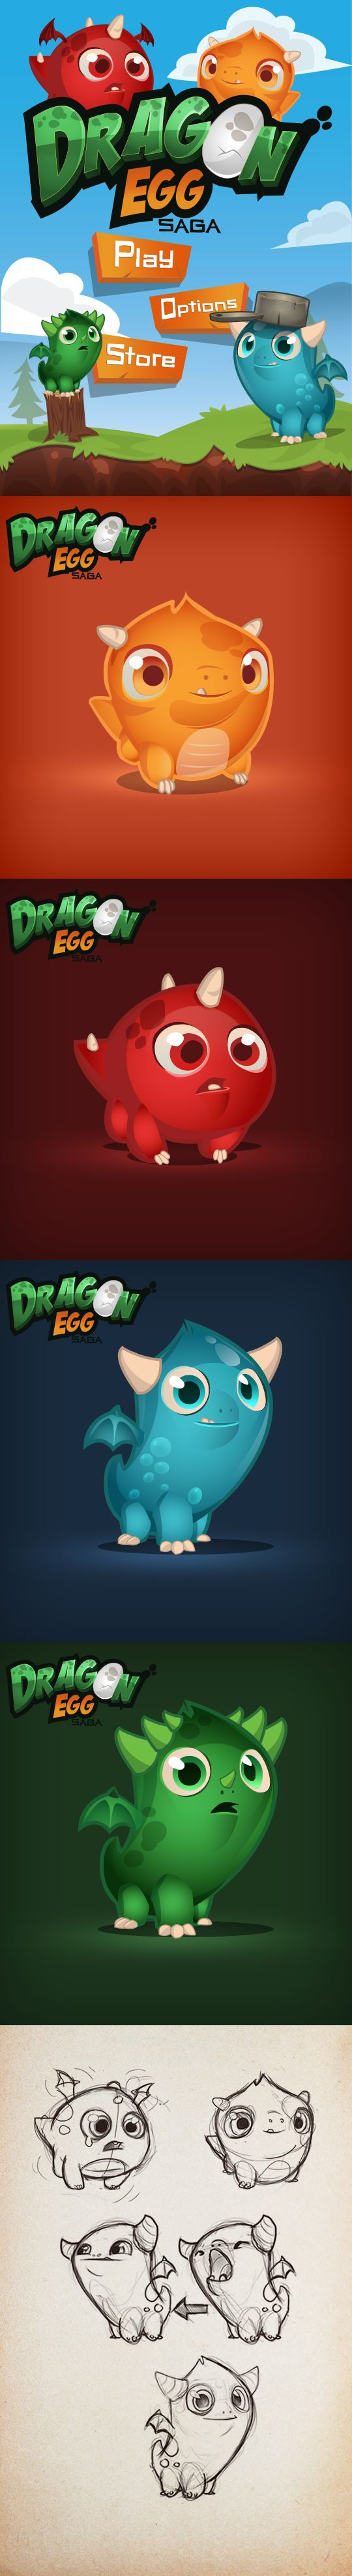 Dragon Egg Saga by Erda Baykara, via Behance